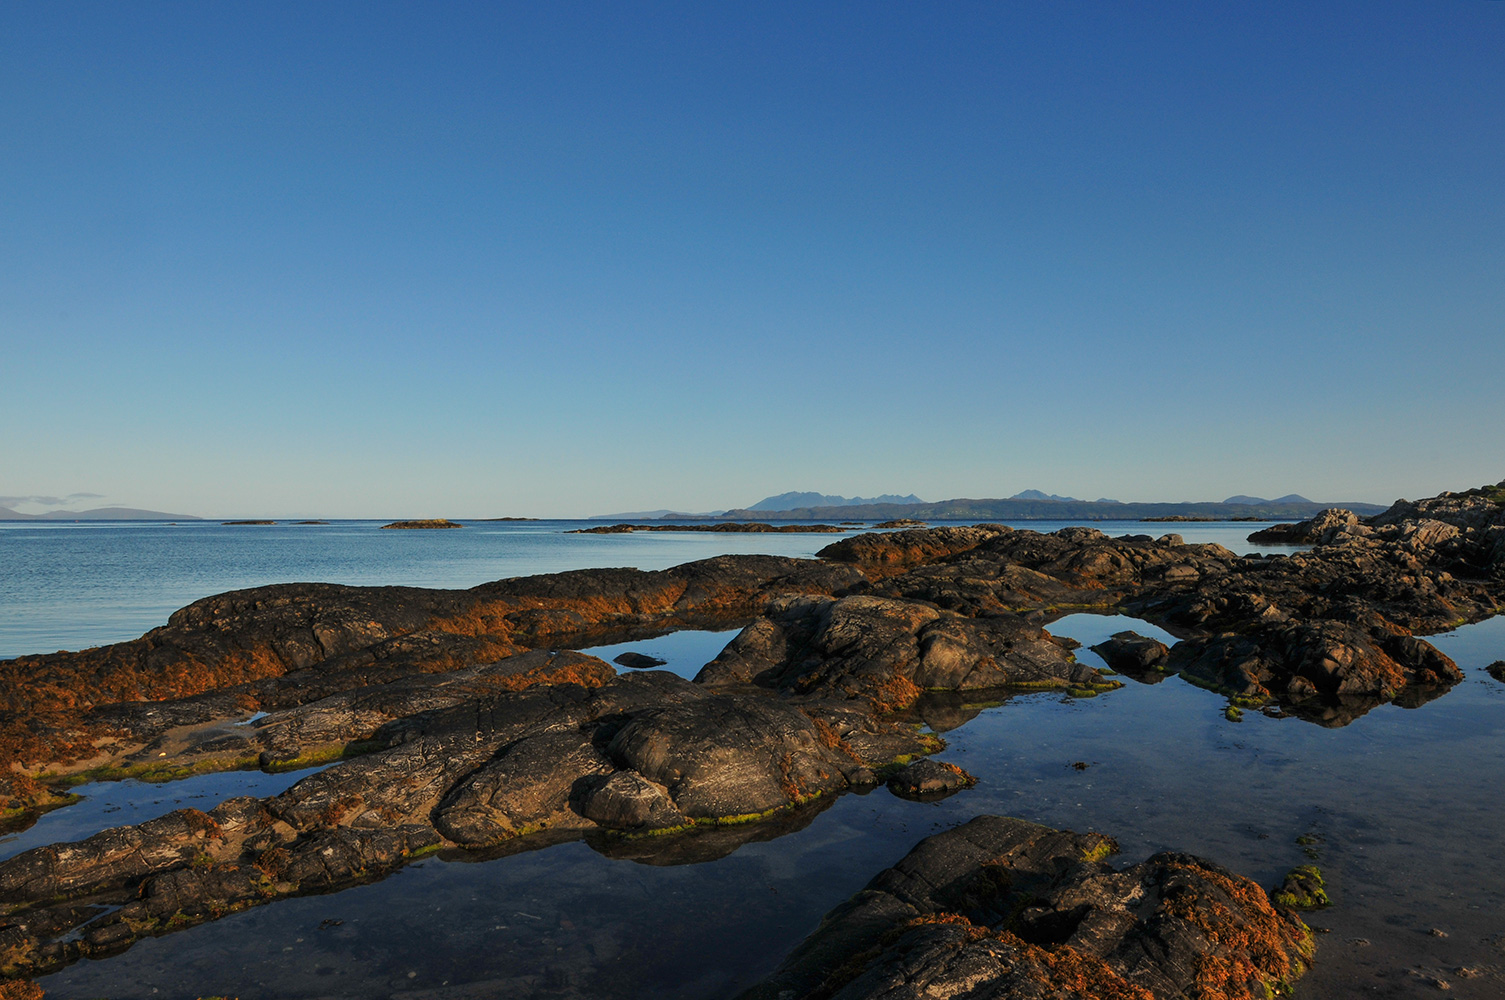 Low tide at Invercaimbe. Early morning light over rock pools, with the Cuilin Ridge on the Isle of Ske beyond.